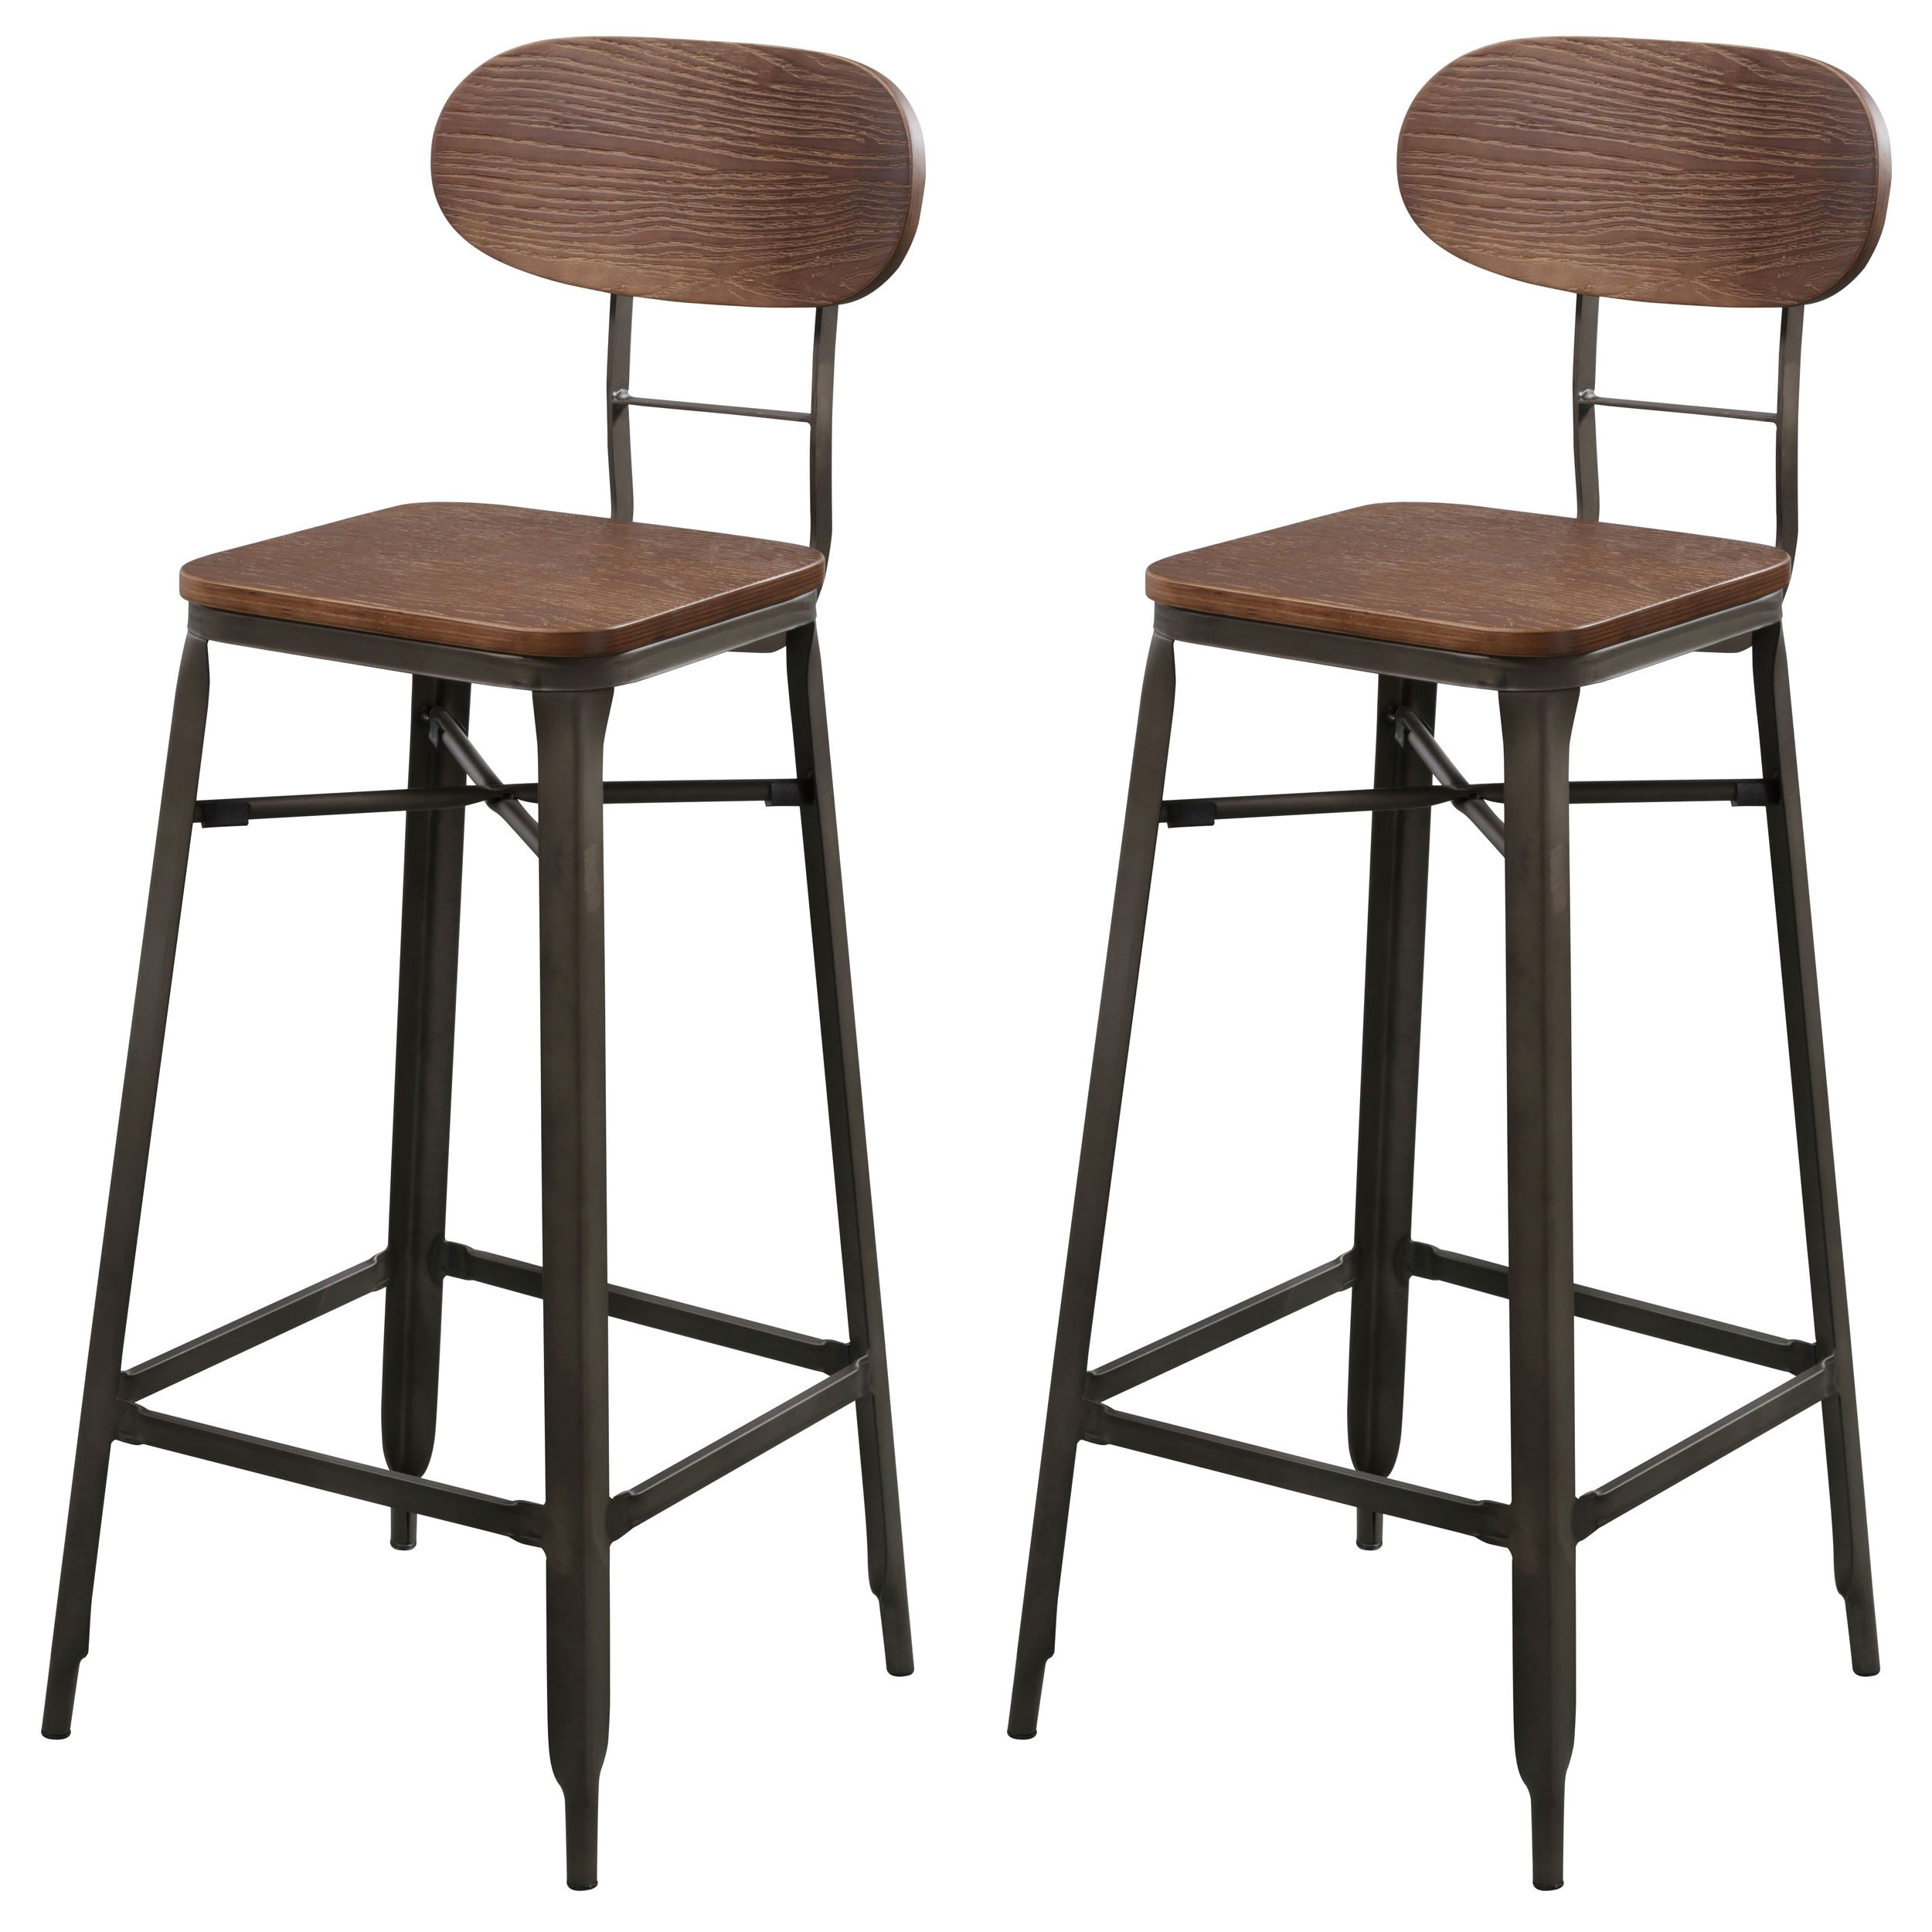 tabouret de bar woody lot de 2 achetez les tabourets de bar woody lot de 2 rdv d co